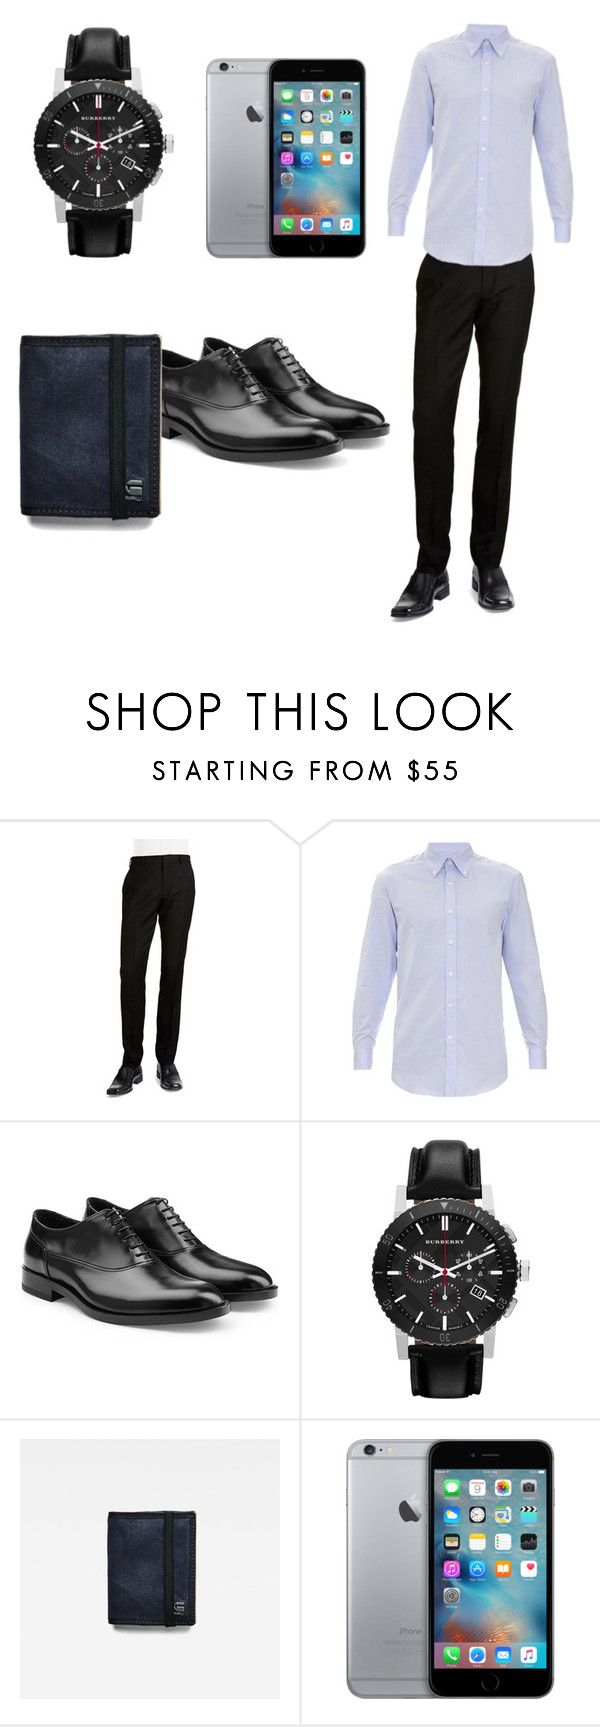 """My Father look"" by cute-awsome-flower ❤ liked on Polyvore featuring BLACK BROWN 1826, Gieves & Hawkes, Jil Sander, Burberry, G-Star Raw, men's fashion and menswear"